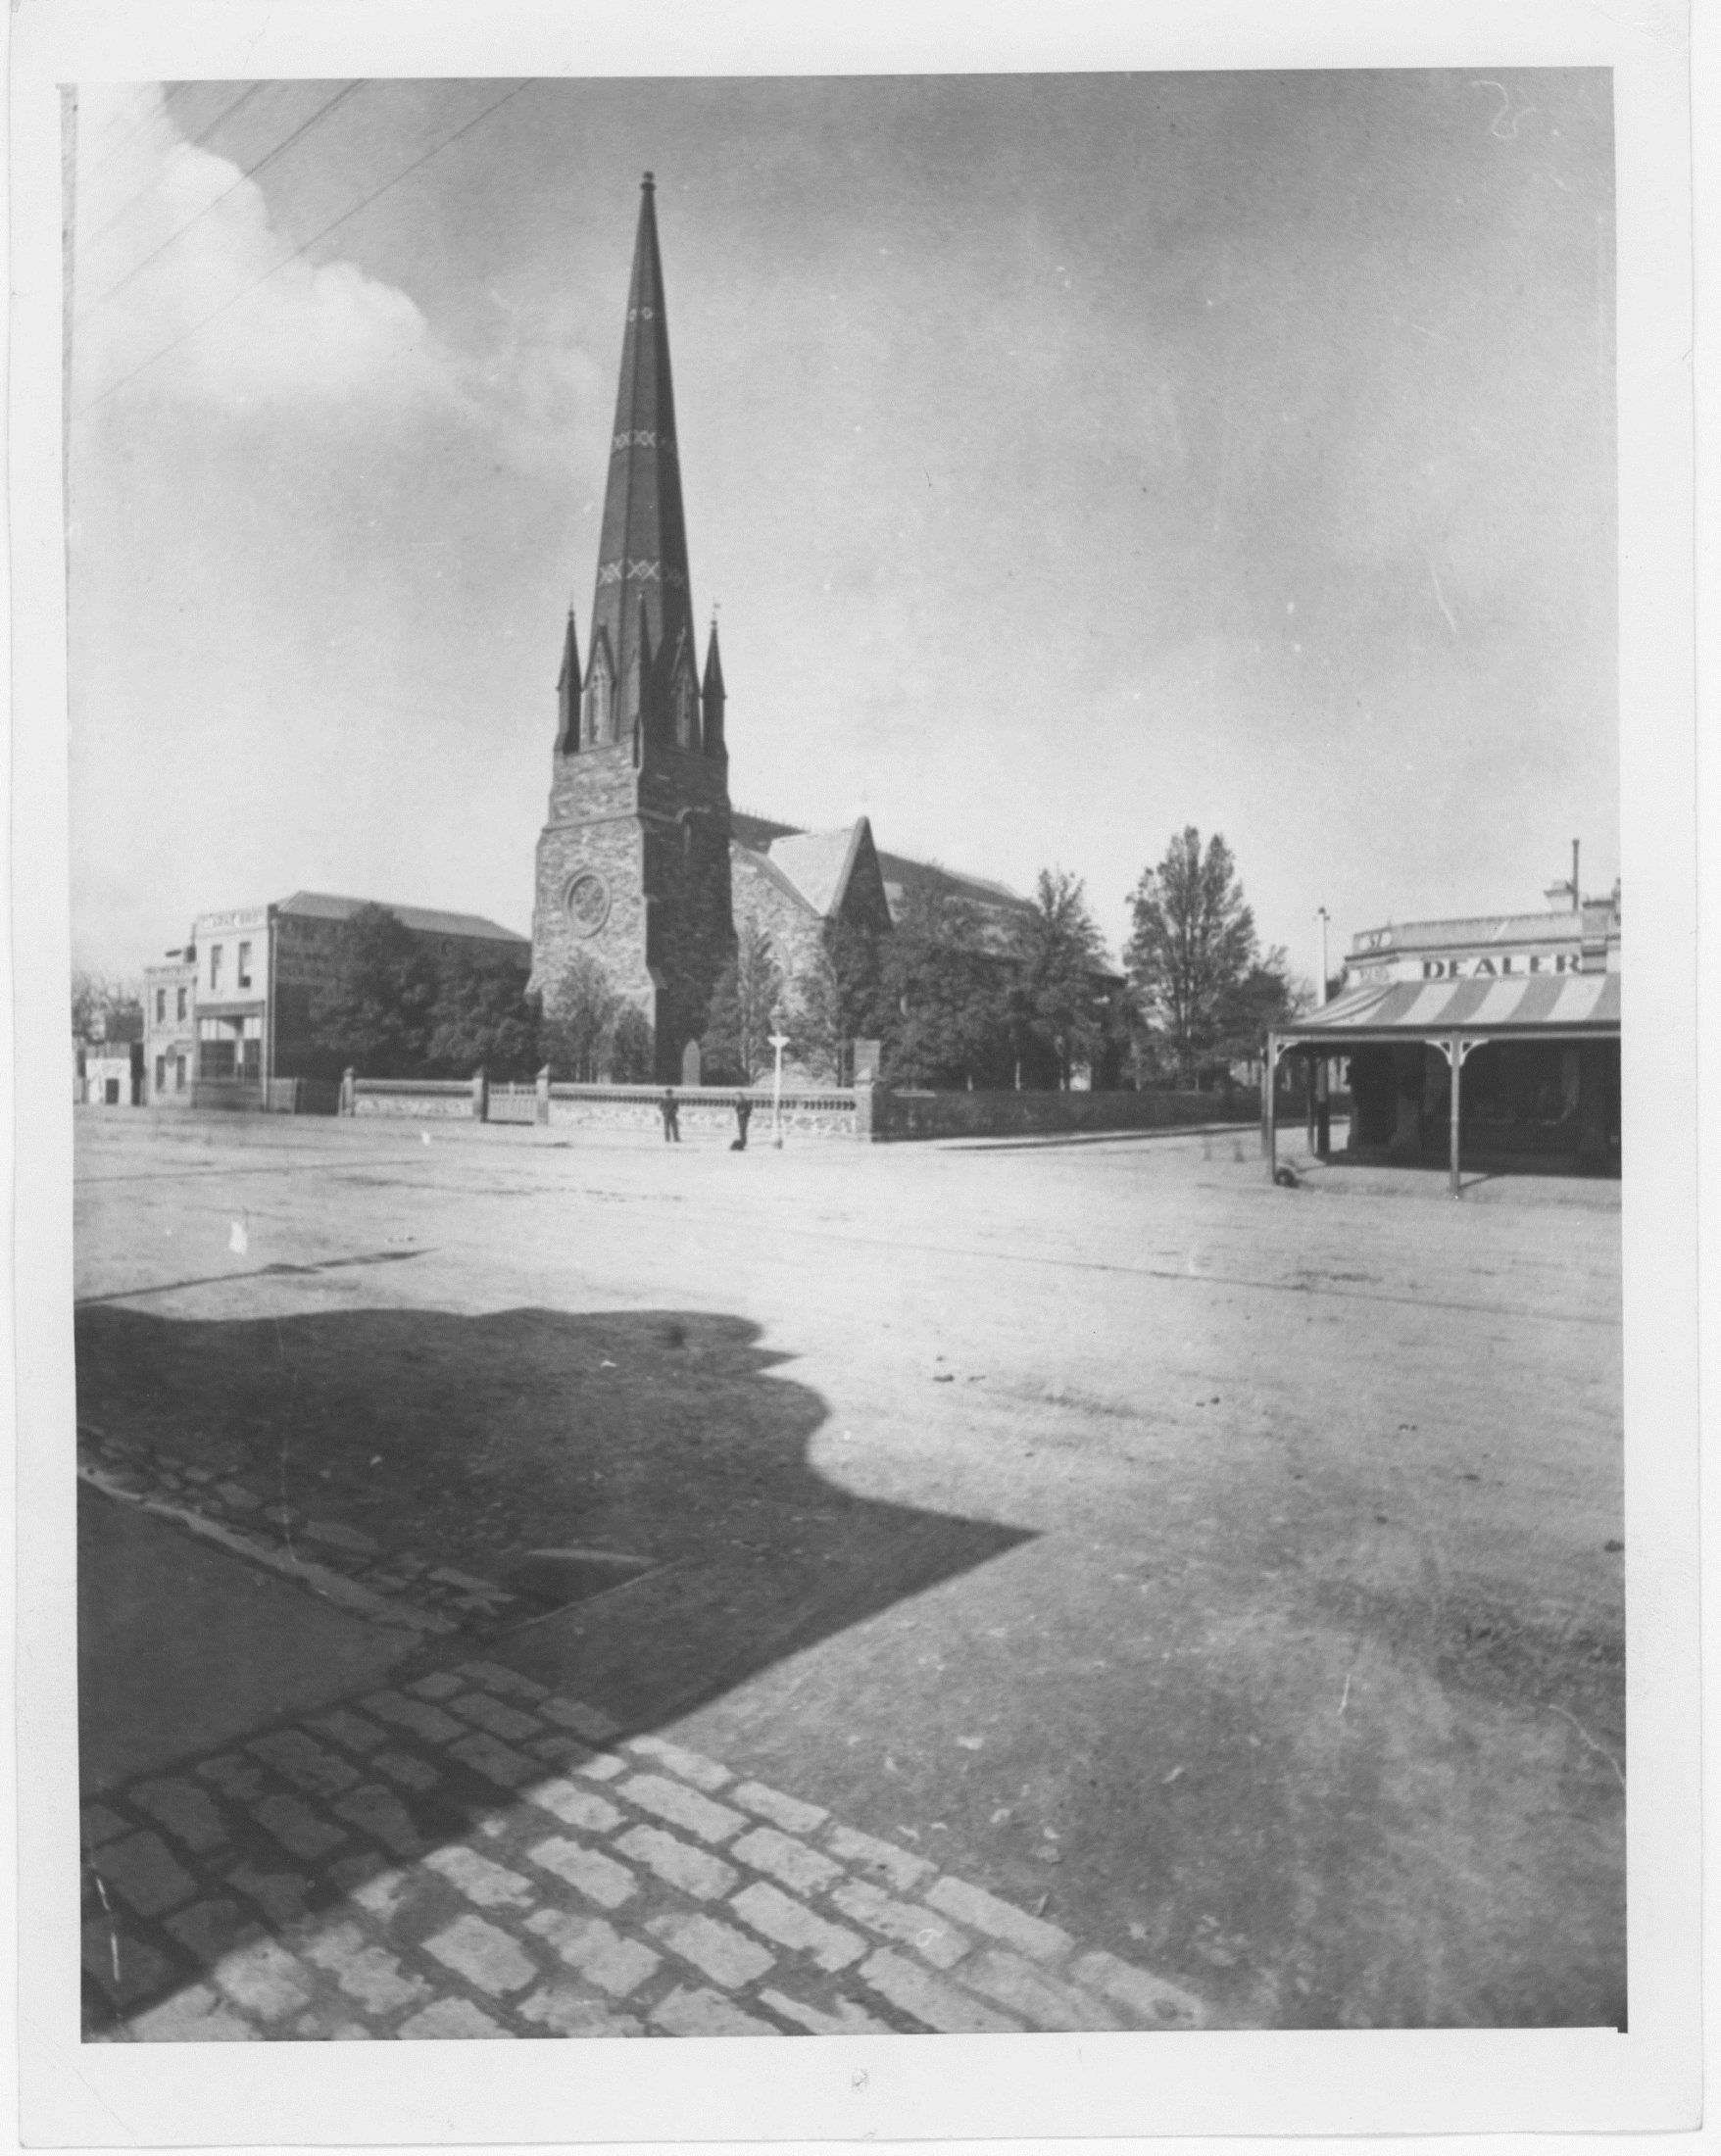 MaughanChurchPre1914